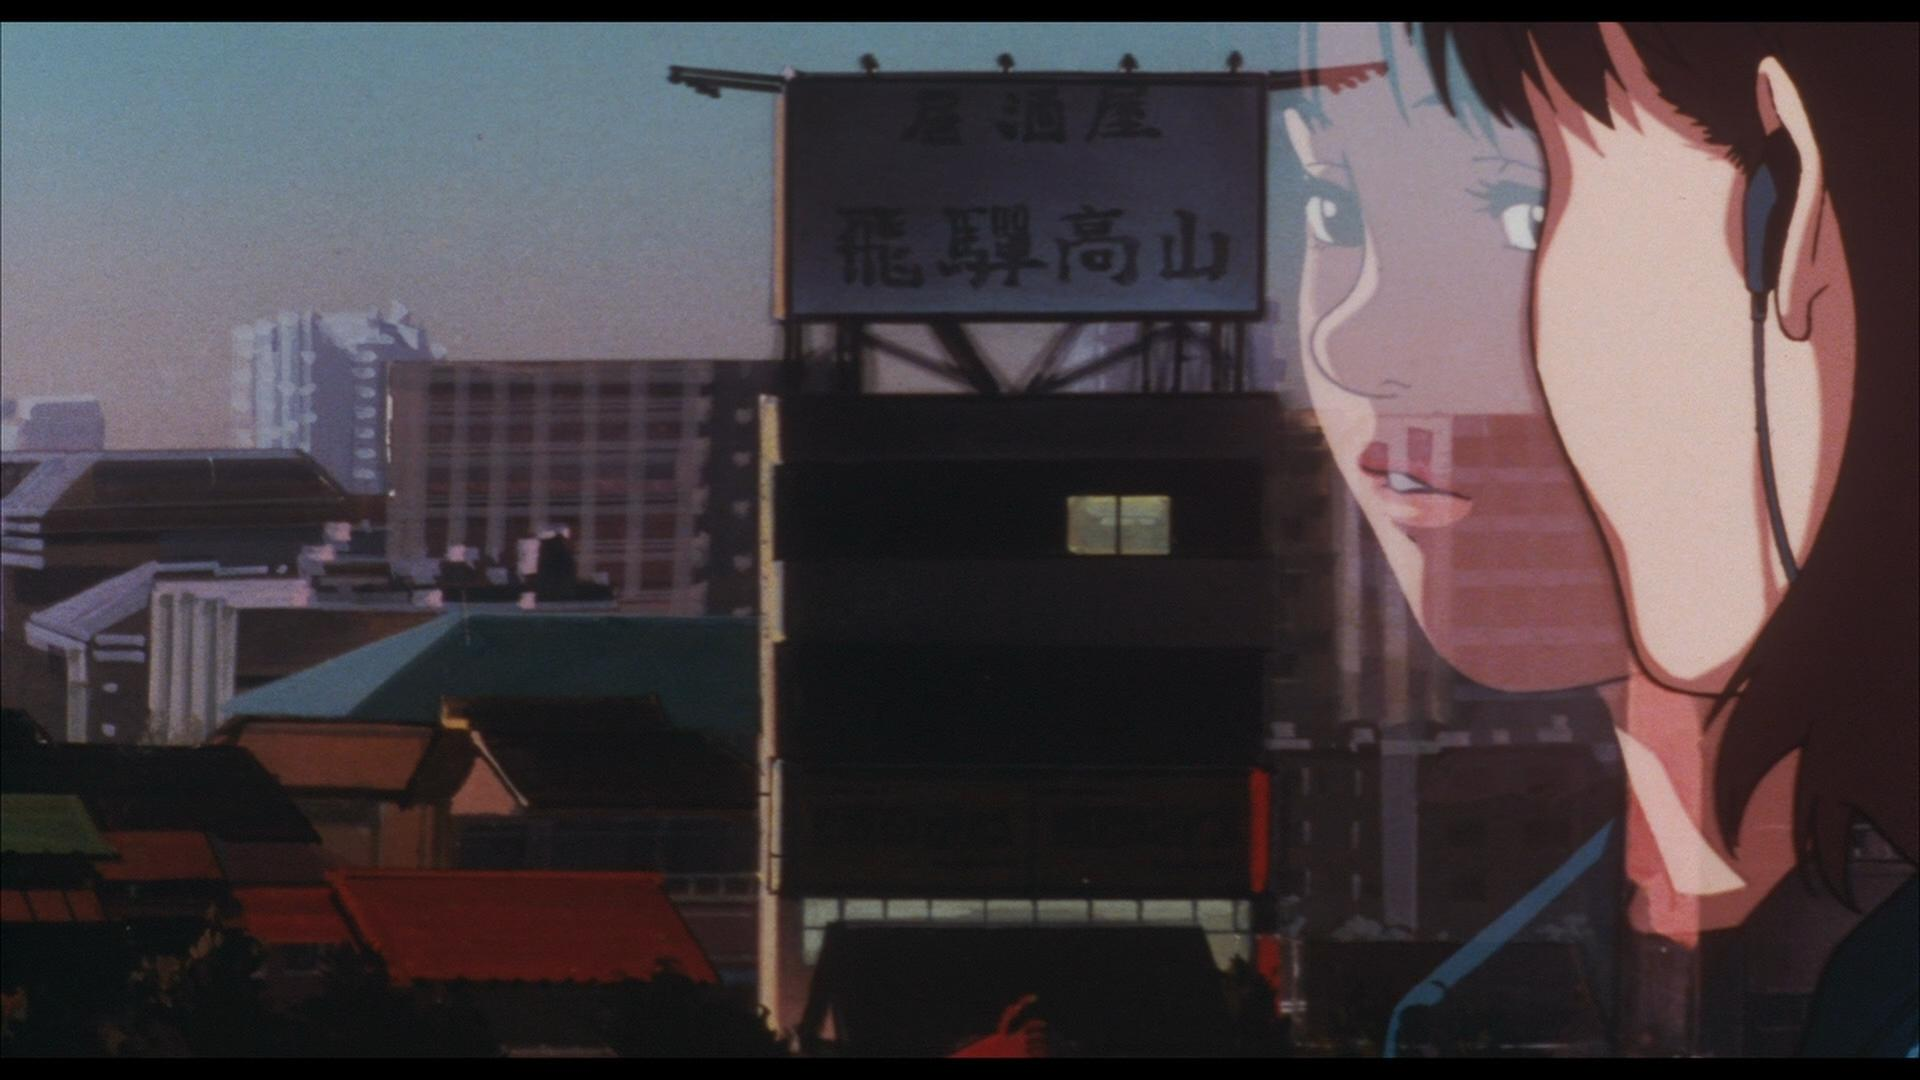 90s anime aesthetic pc wallpapers